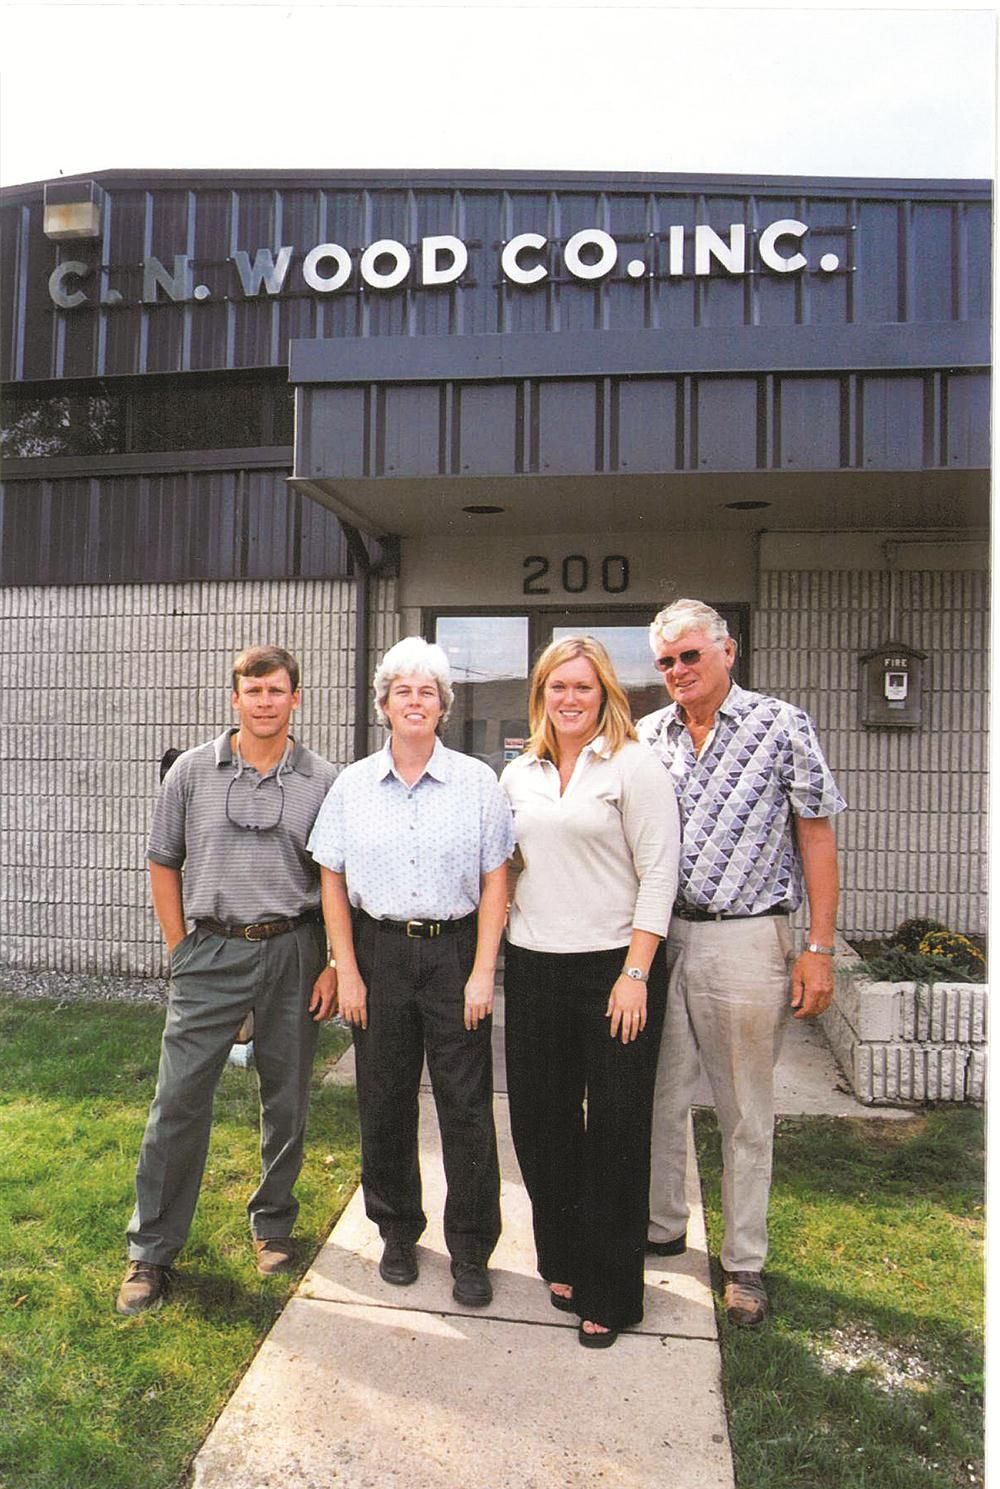 Standing in front of the entrance to C.N. Wood's Woburn facility in 2002. (L-R) are now-CEO Dana MacIver; President Paula Benard; Administrator Paula Piper; and Chairman of the Board Bob Benard.